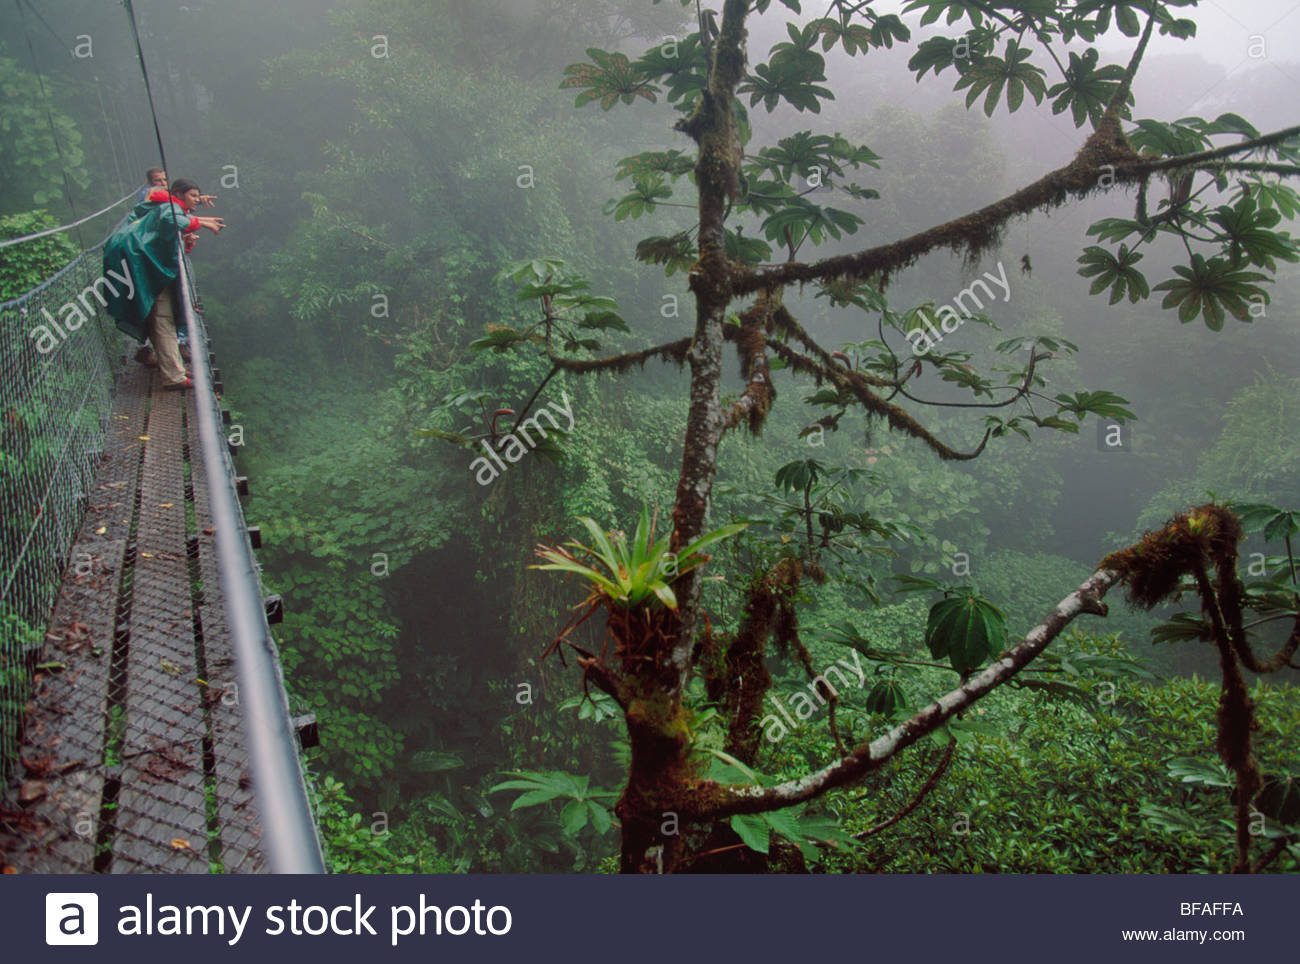 Bird watchers on canopy walkway, Monteverde Cloud Forest Preserve, Costa Rica - Stock Image